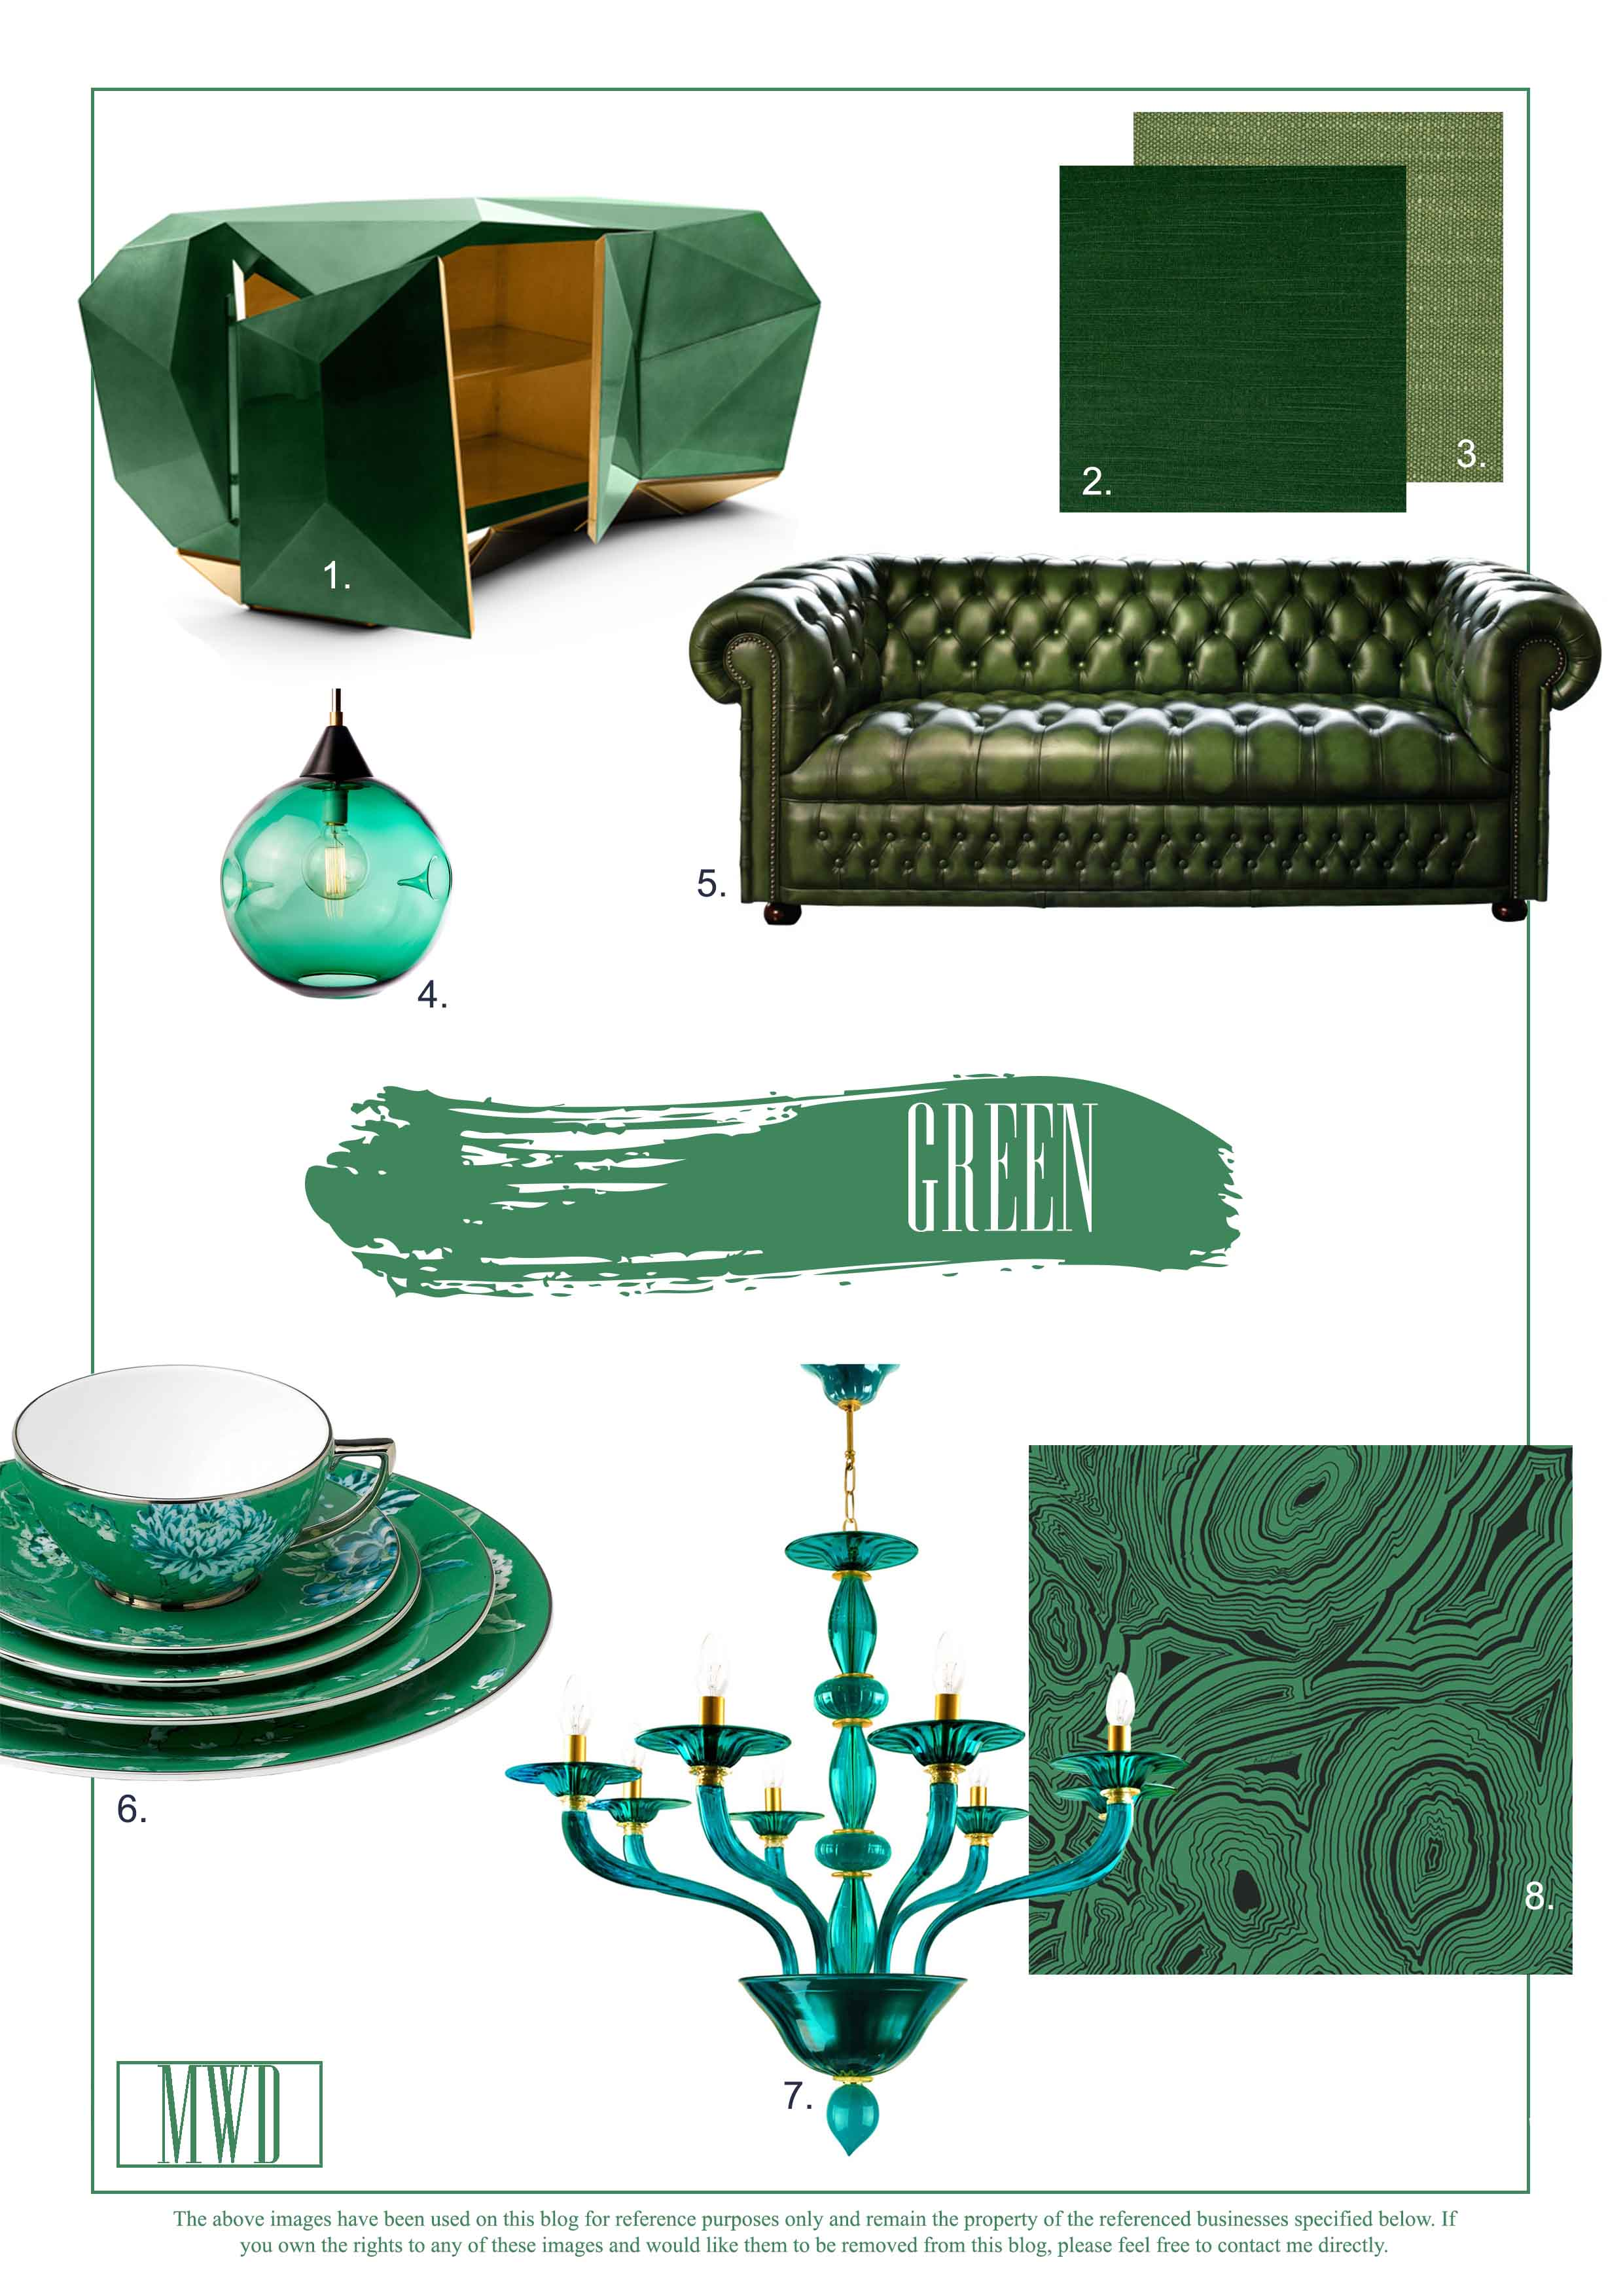 Green Accessory and decoration ides for the home